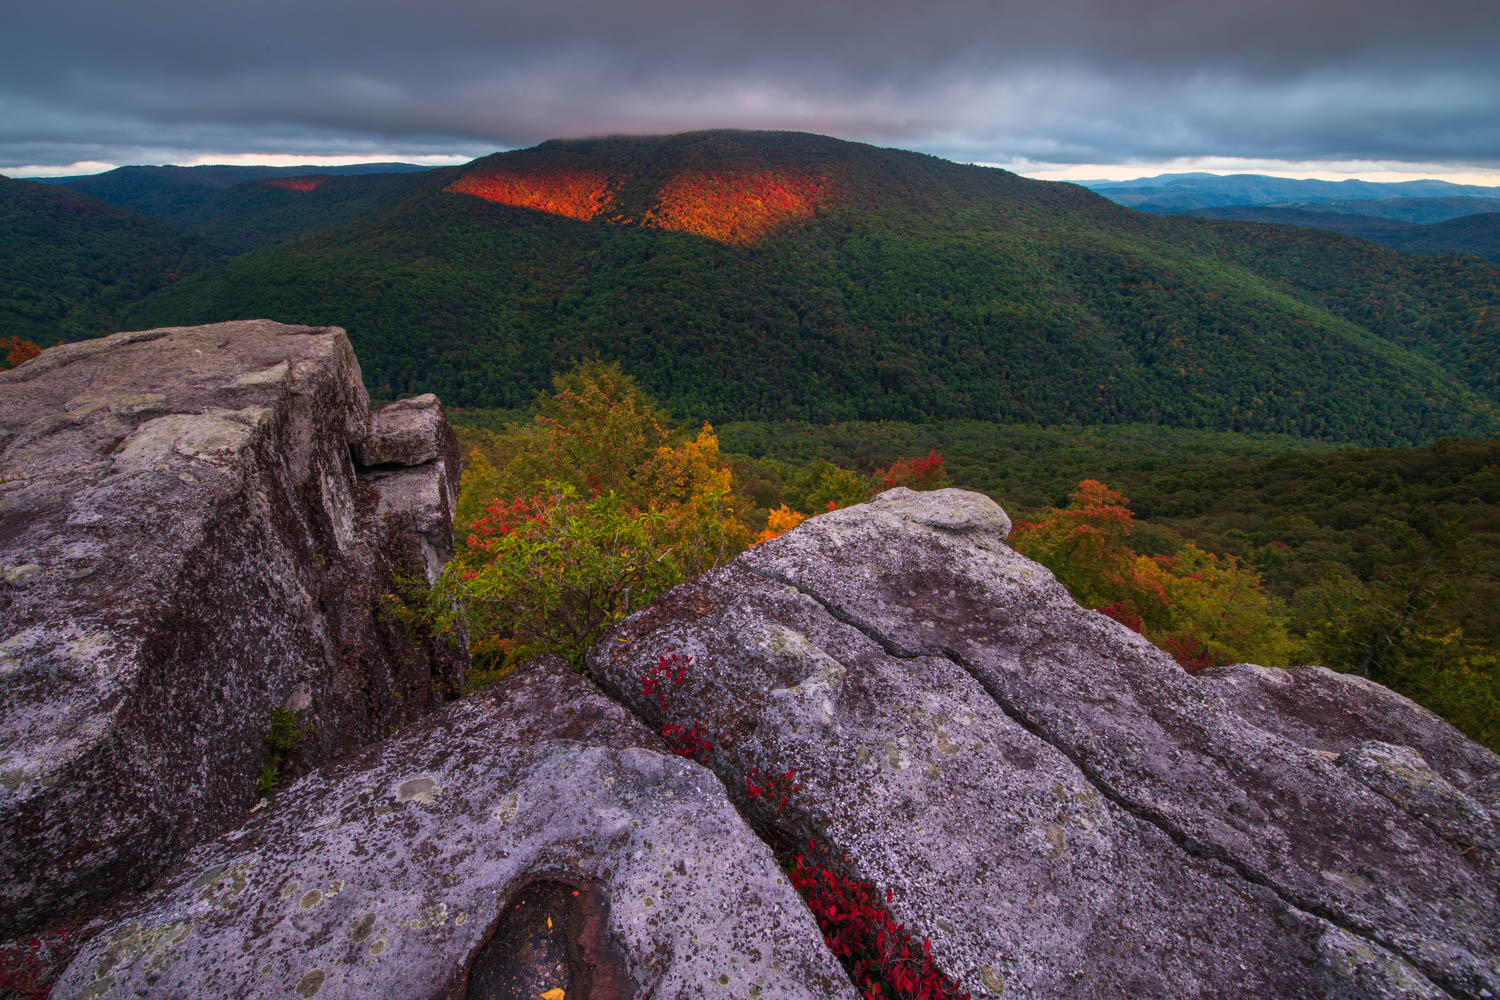 A dramatic sunset from Table rock, a remote vista, in the Monongahela National Forest of West Virginia.